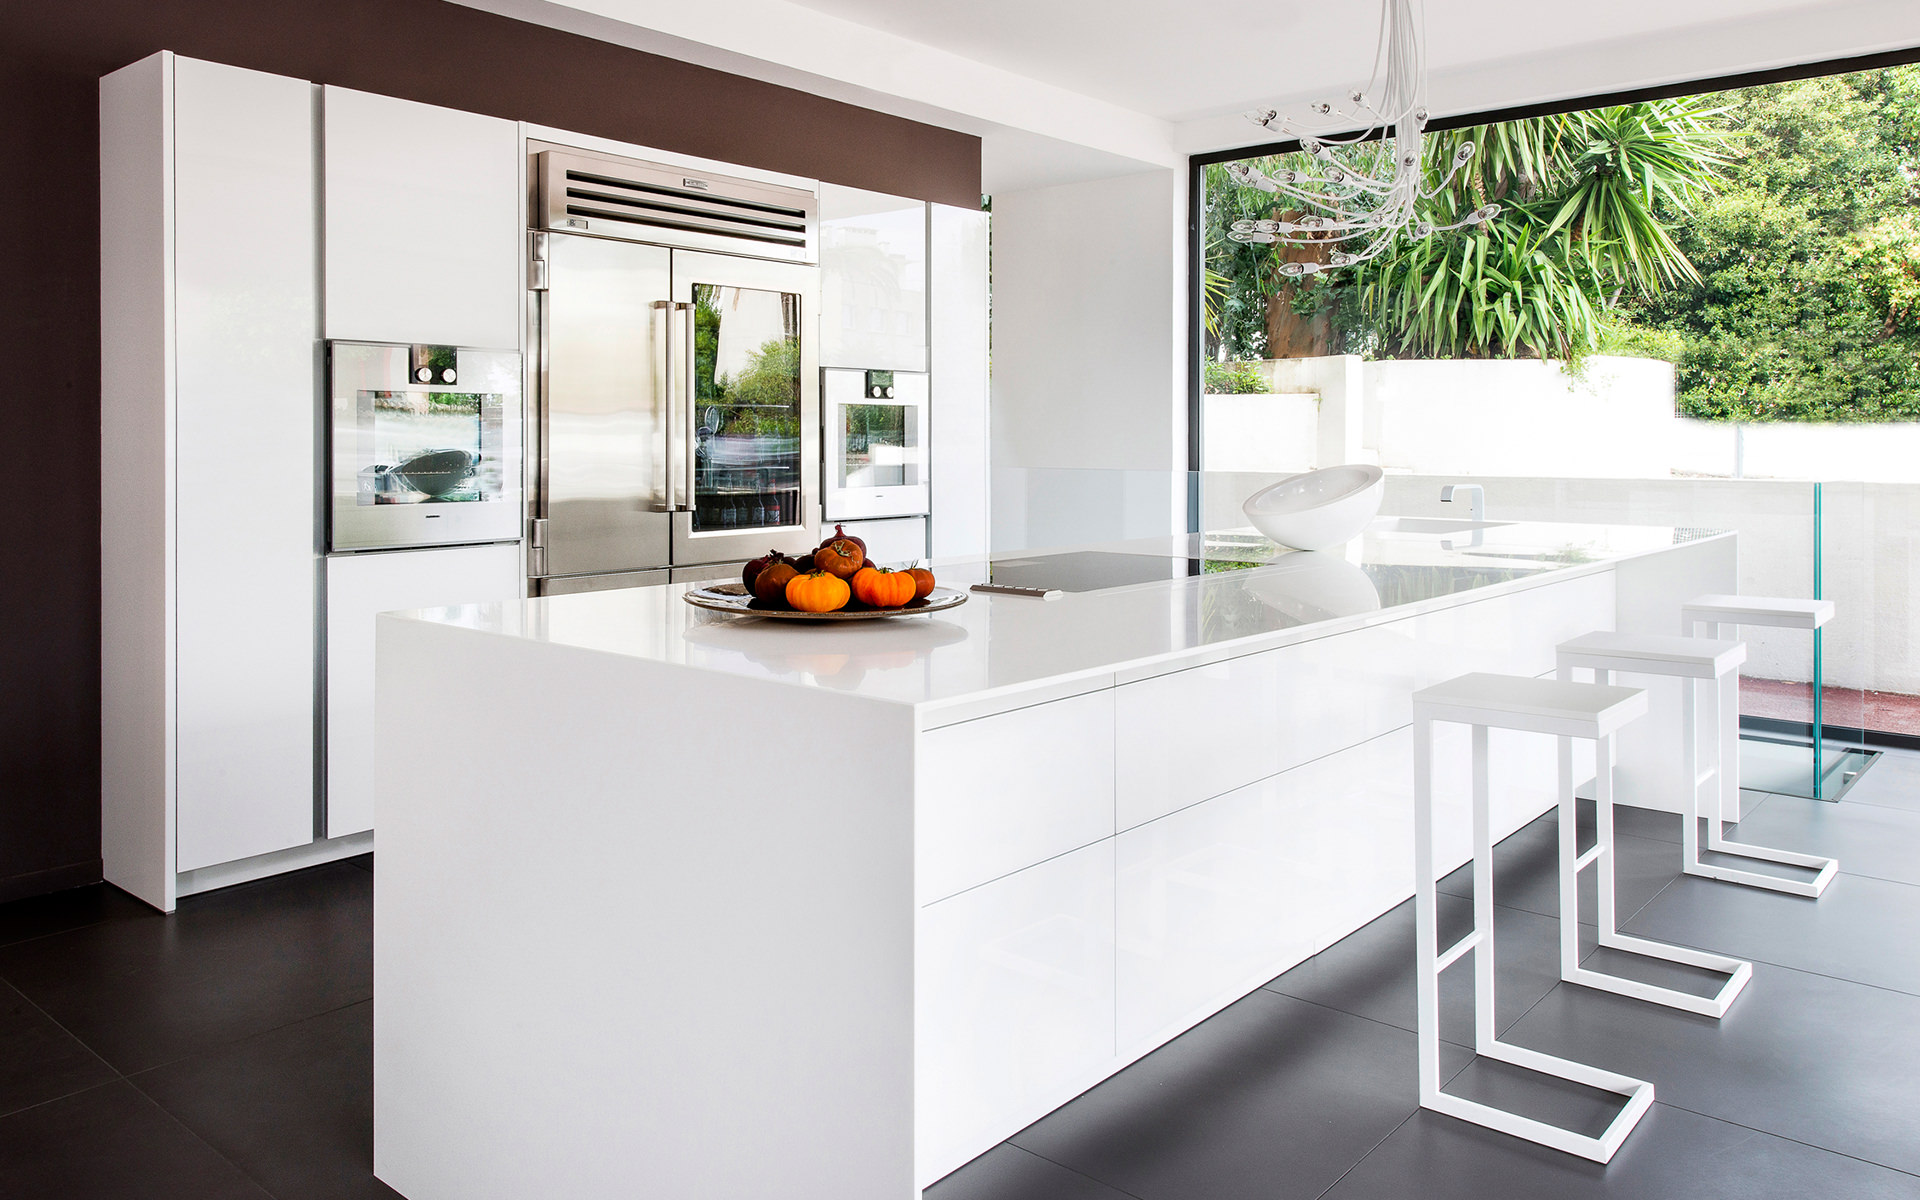 Cuisines allemandes excellent siematic kitchen with for Cuisiniste allemand